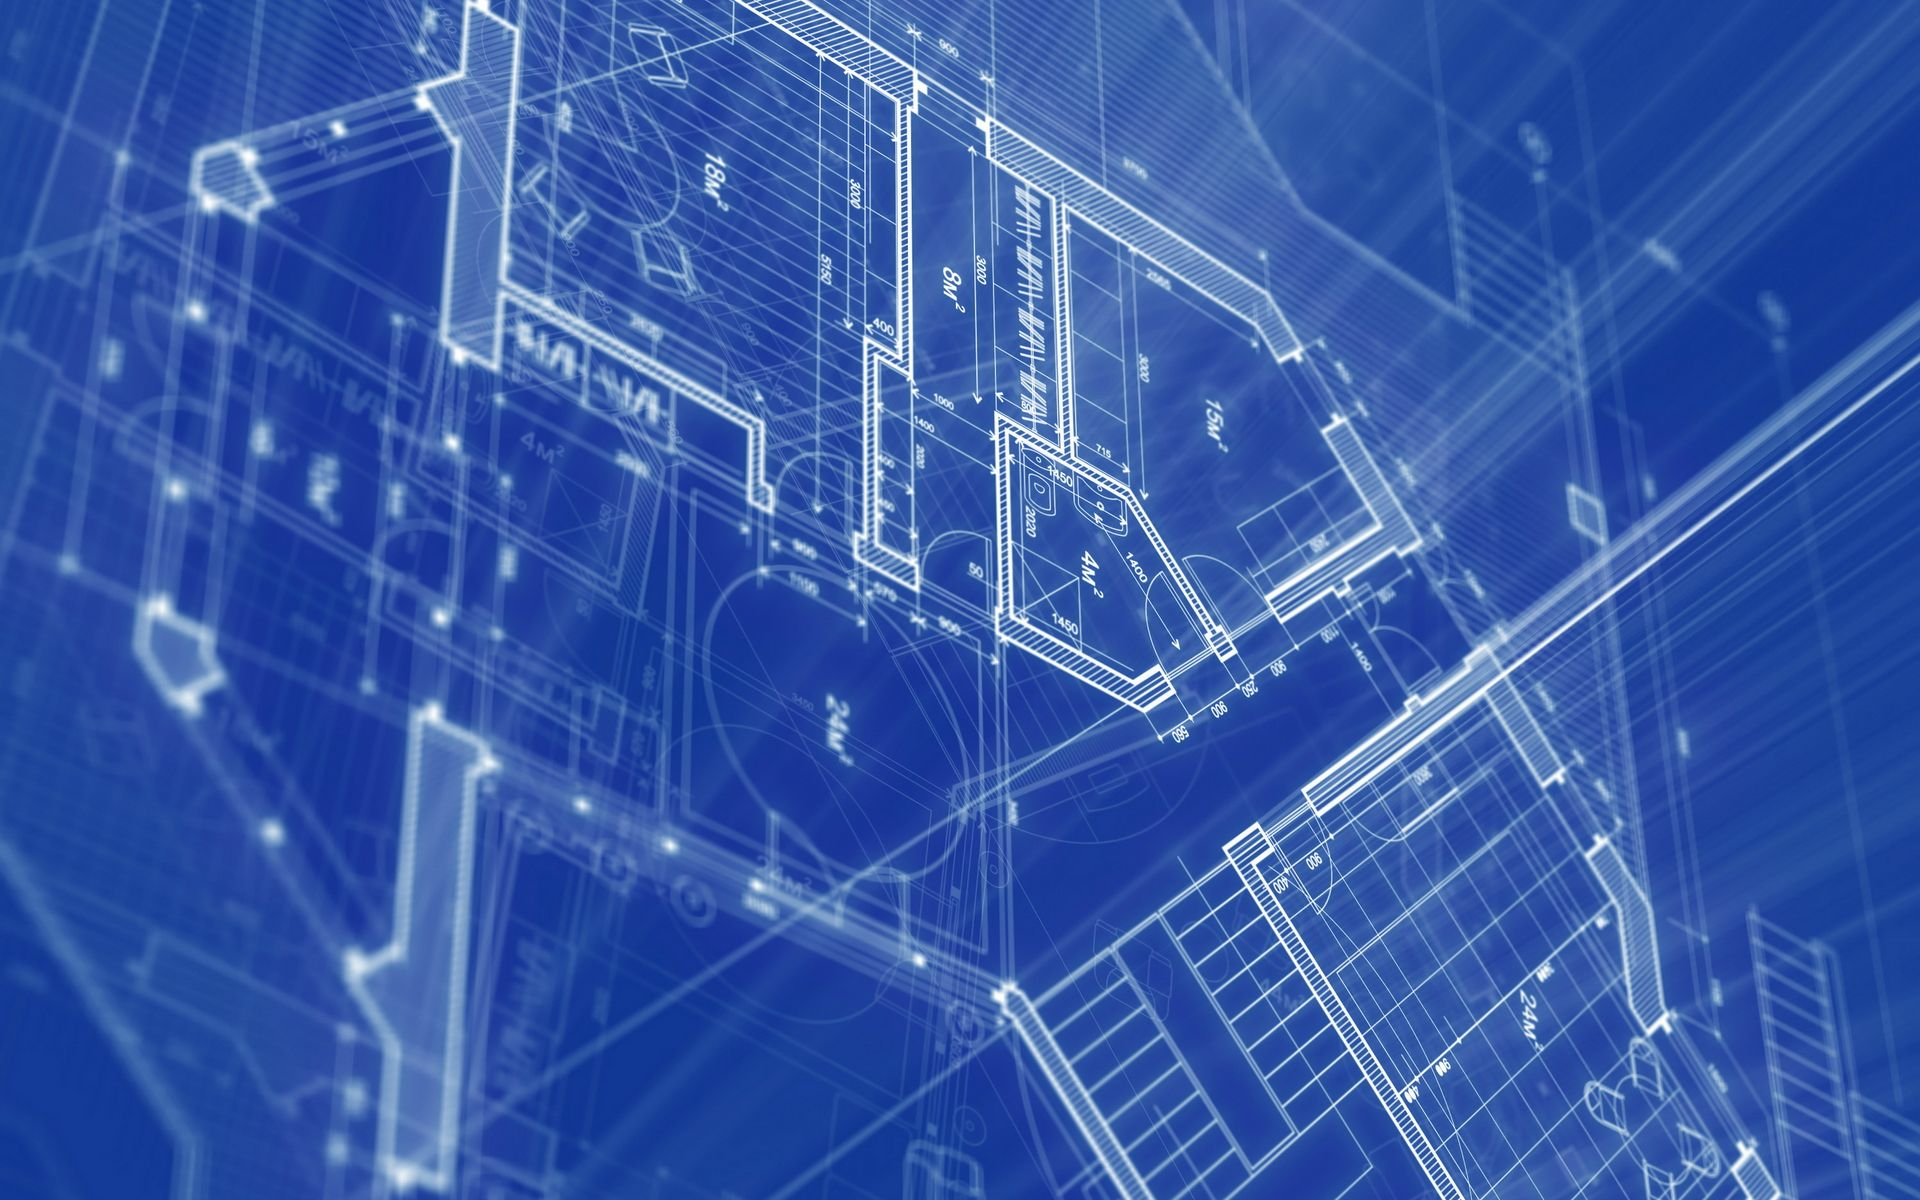 Blueprint architecture hd widescreen desktop wallpaper blueprint architecture malvernweather Gallery